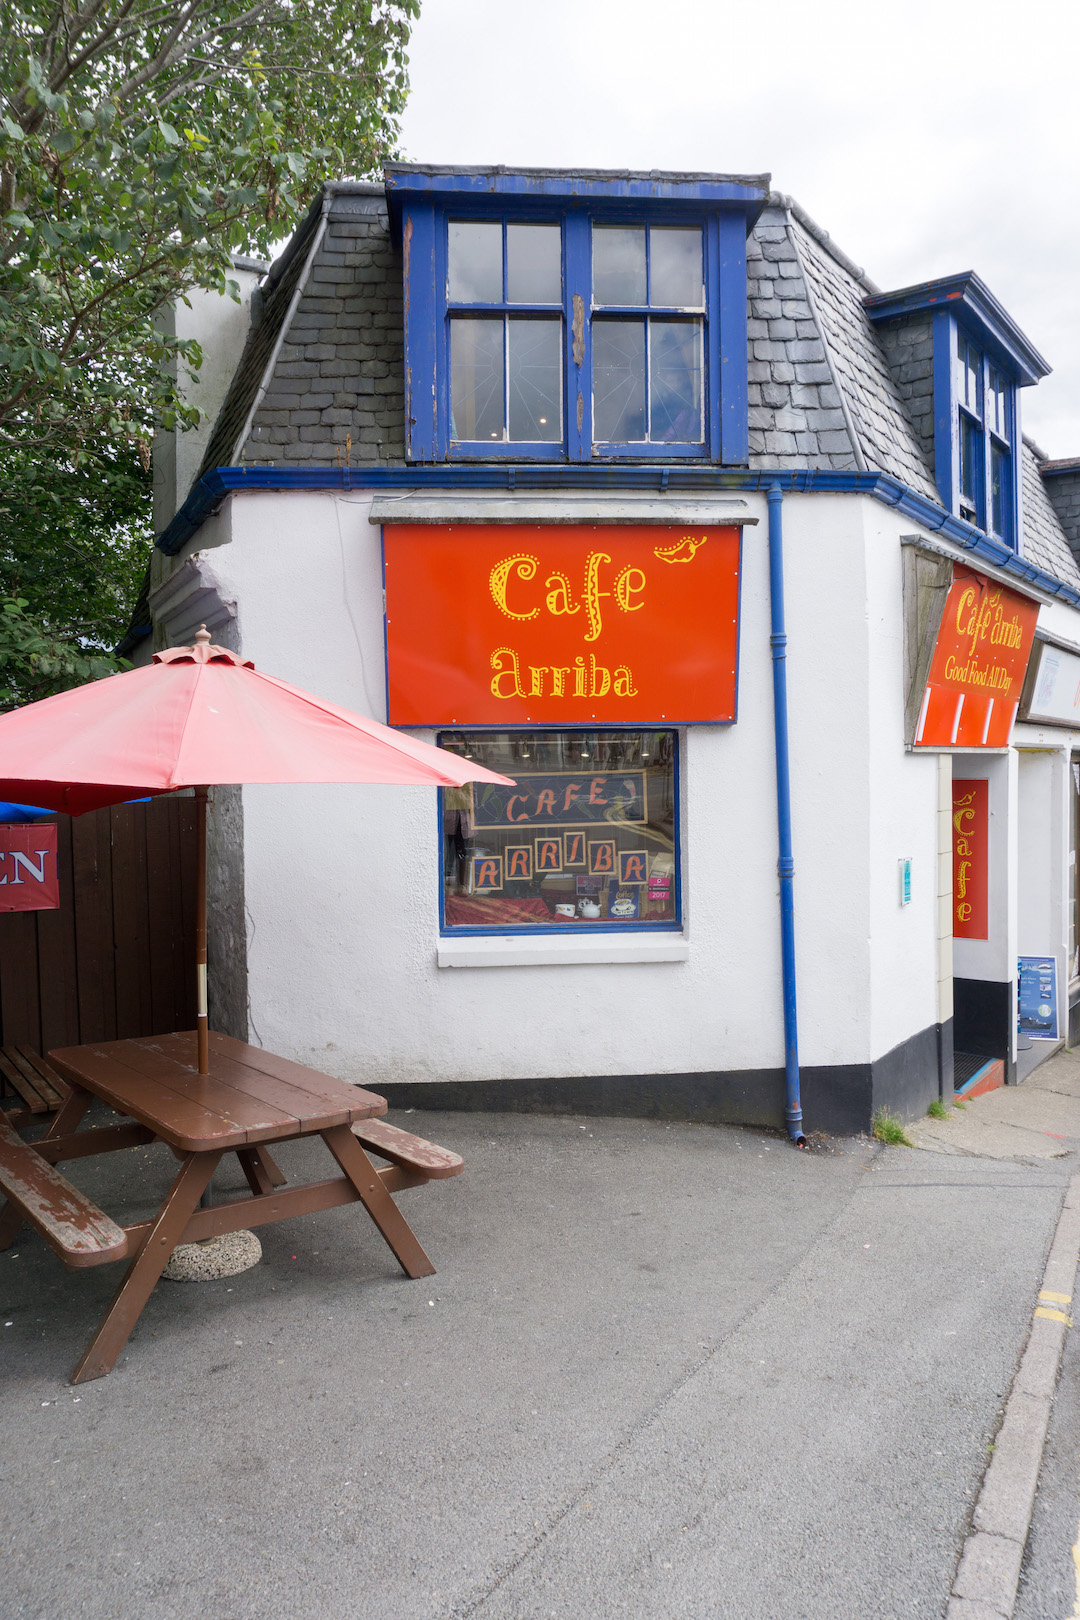 Cafe Ariba, Portree, Isle of Skye